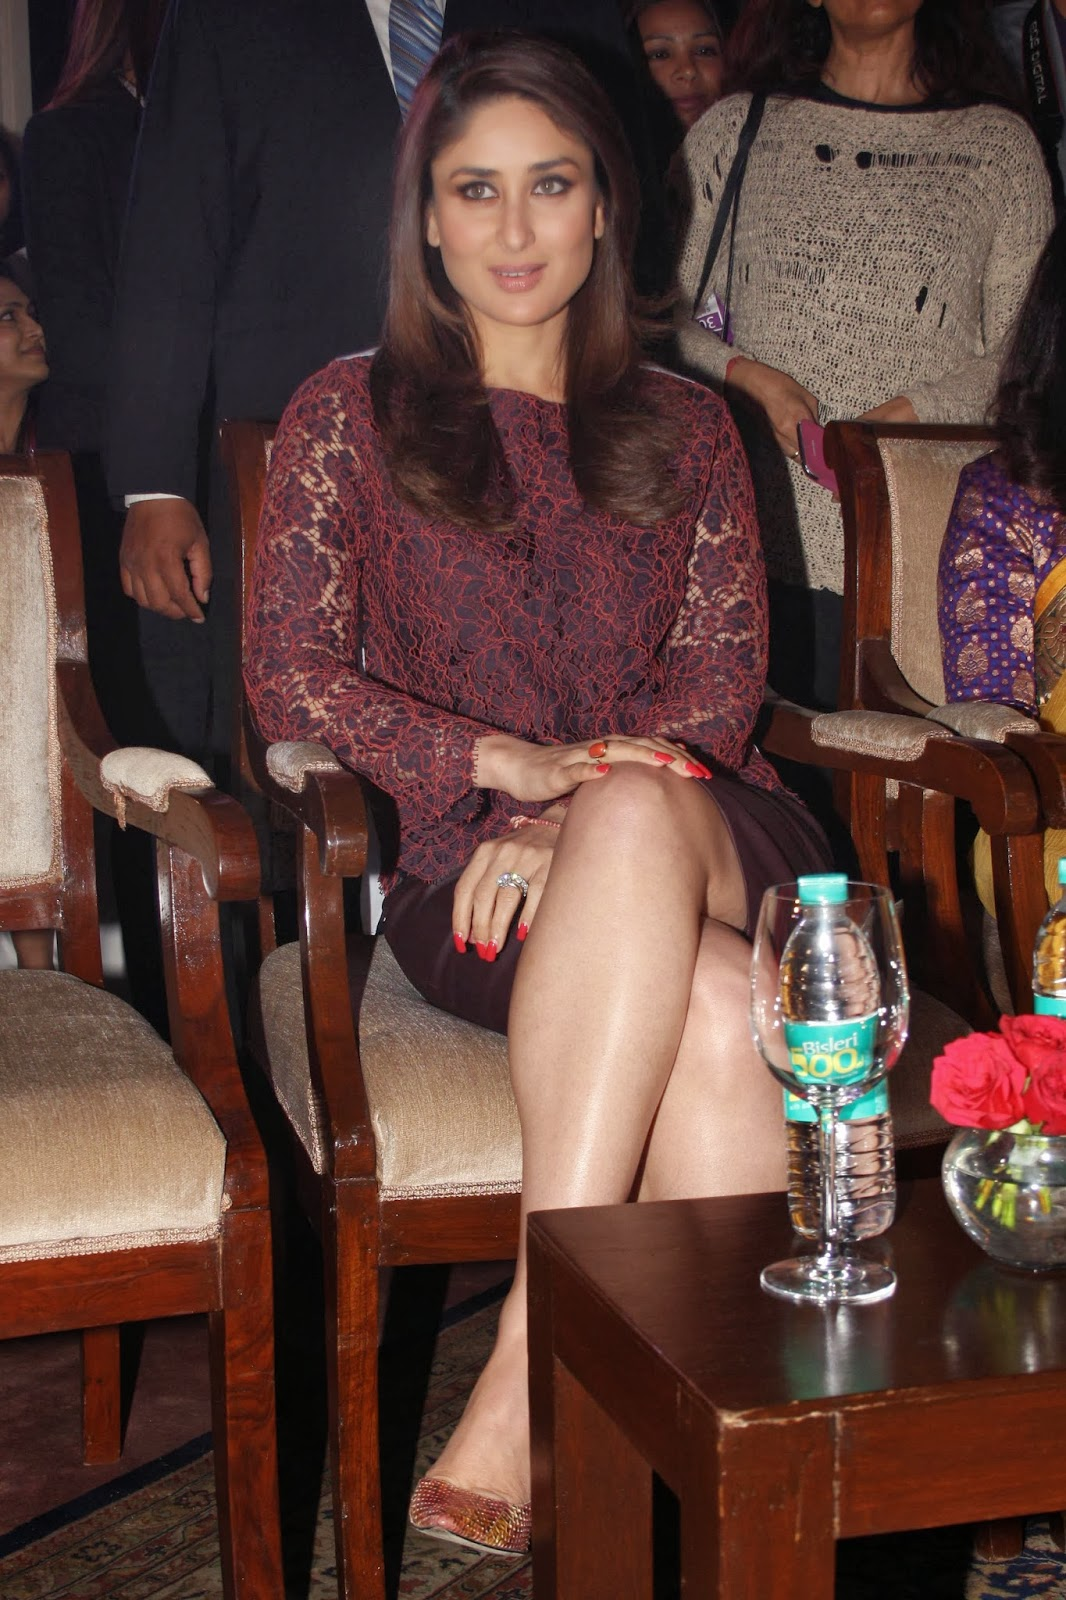 Bollywood Diva Kareena Kapoor At 'Naturals' Salon Chain Brand Ambassador Announcement Ceremony in Delhi